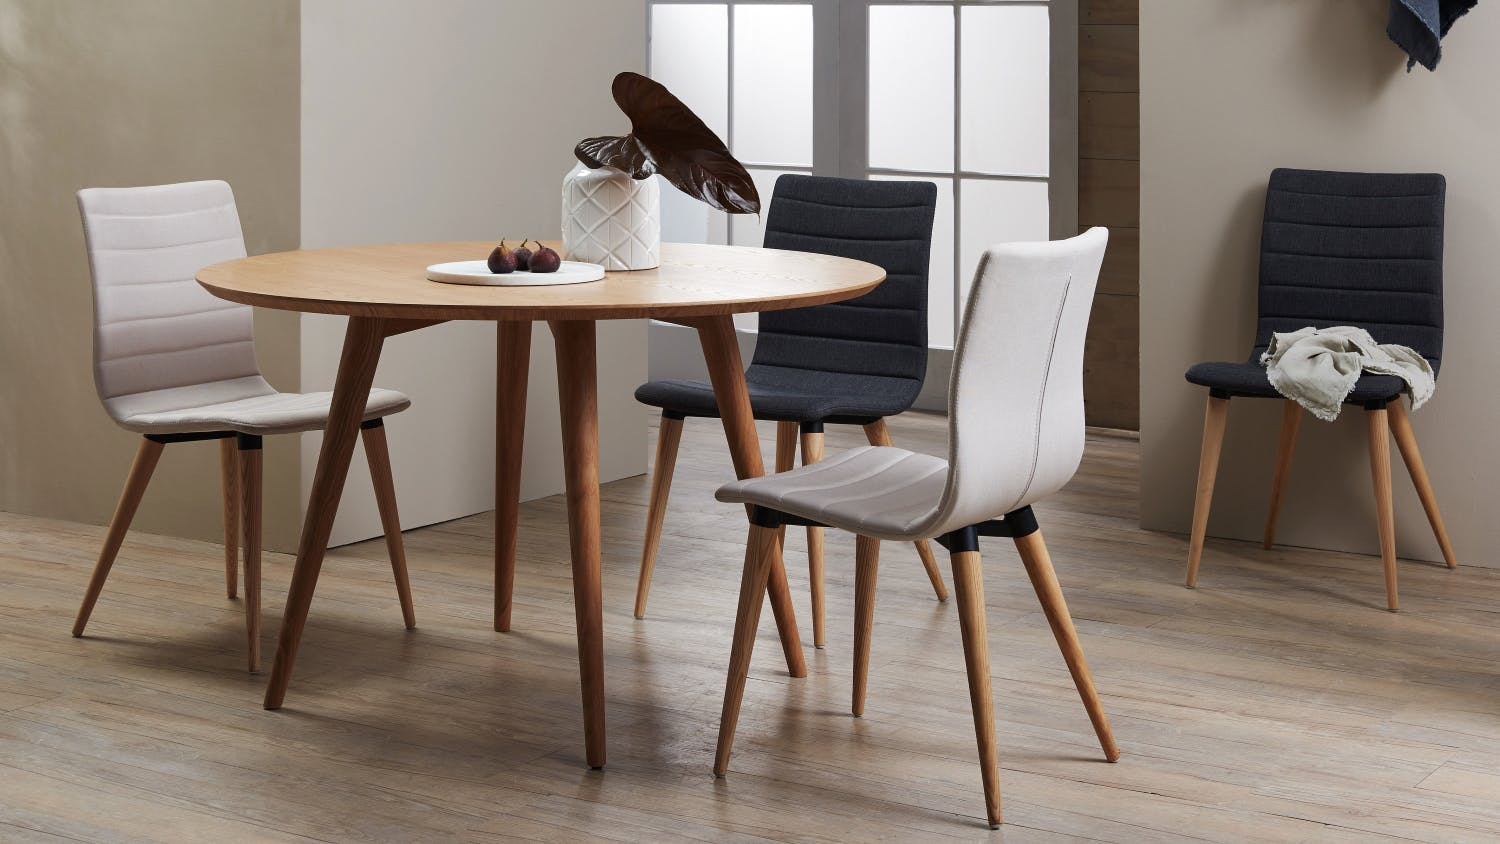 Popular 184 list round dining table Ashley home furniture adelaide